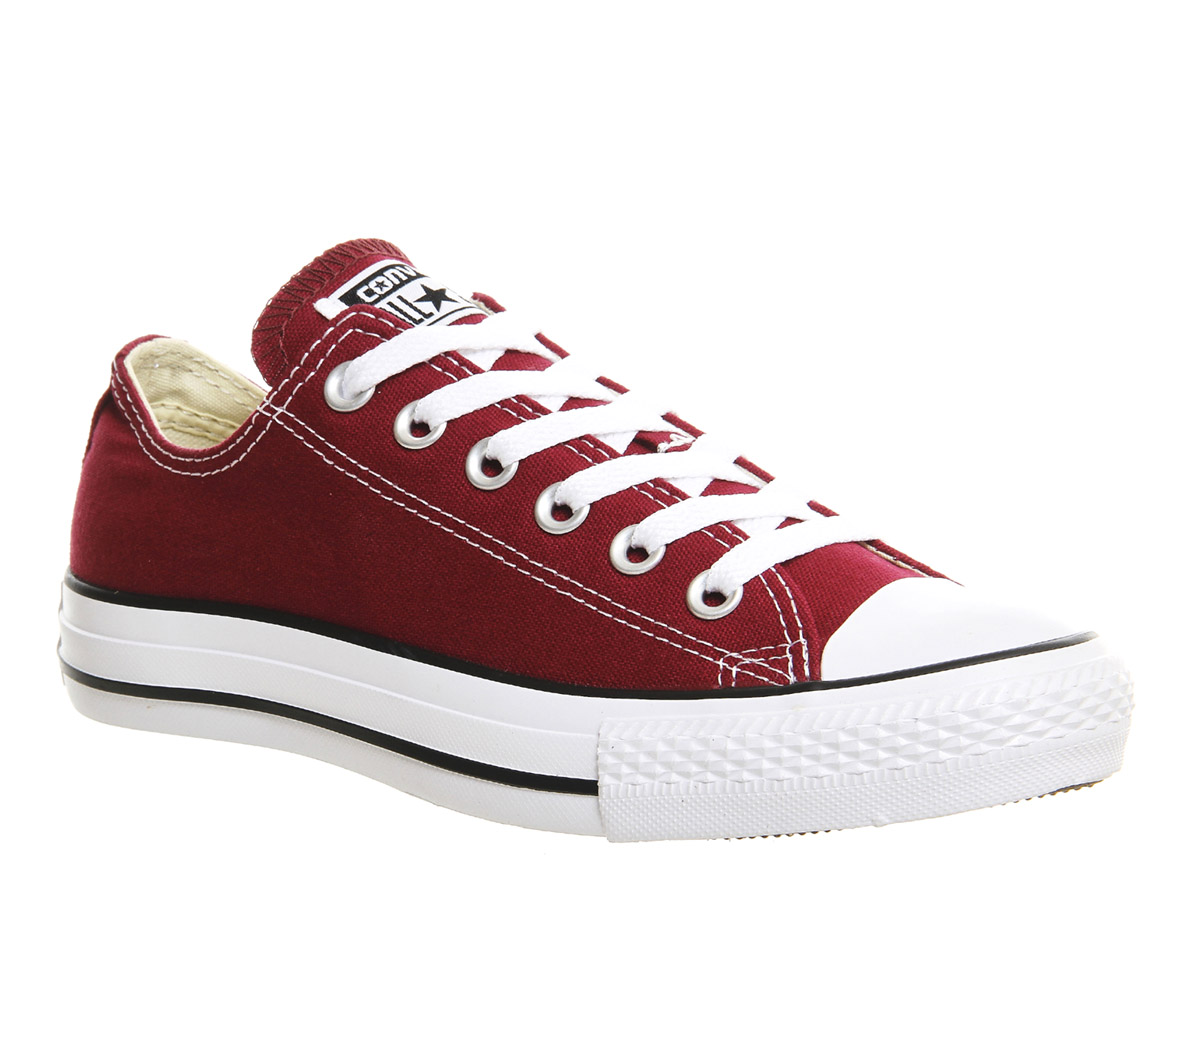 burgundy converse converse all star low maroon canvas - unisex sports NTFTRSV